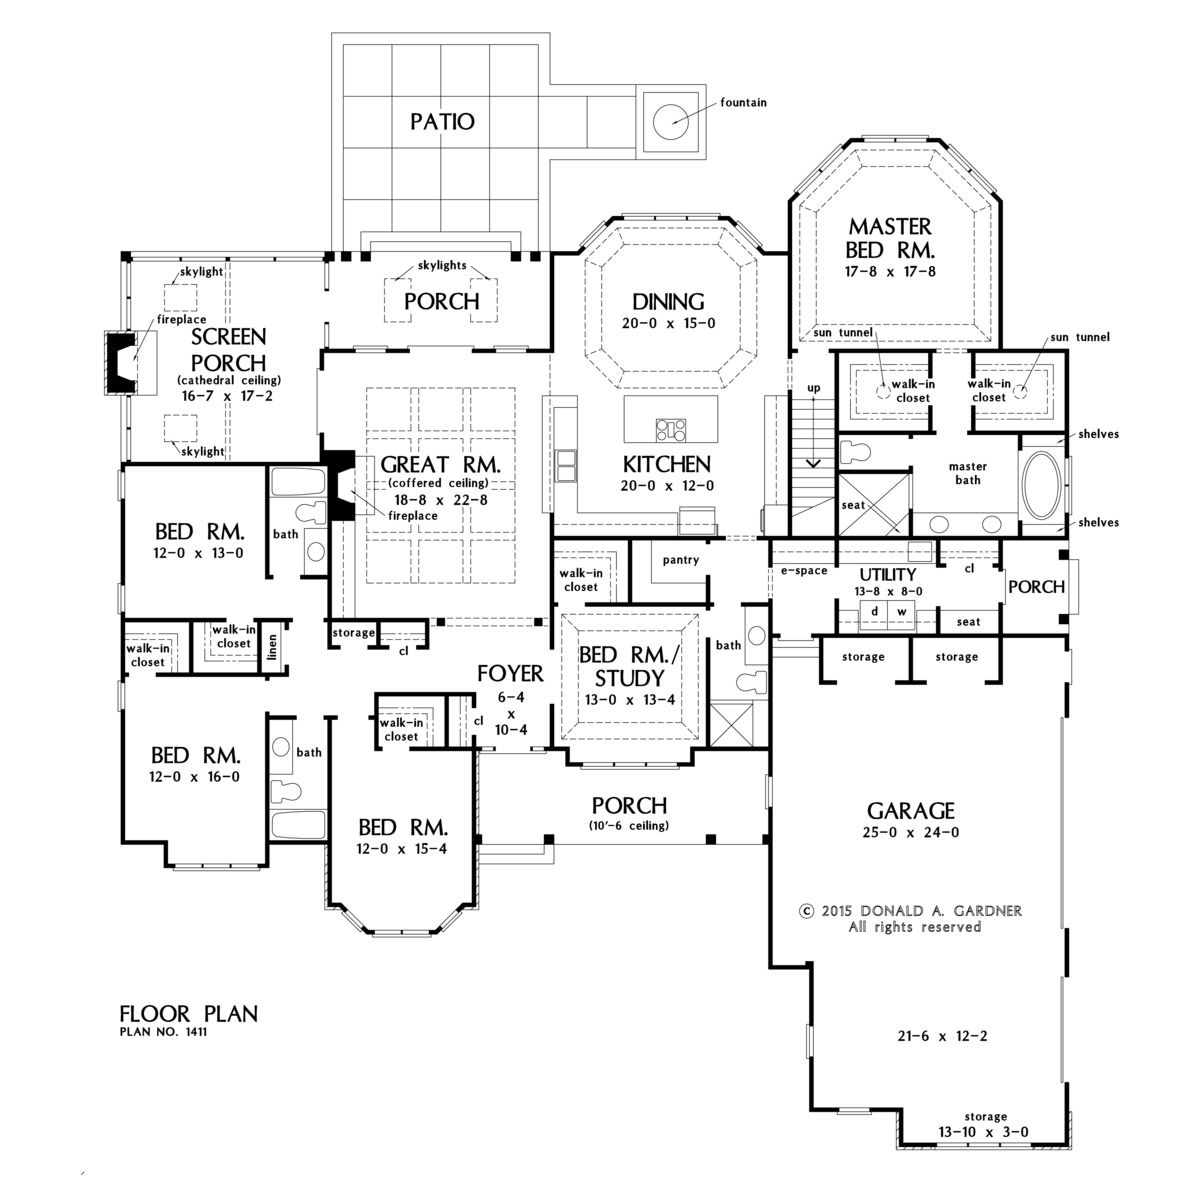 Plan Of The Week Over 2500 Sq Ft The Harper 1411 3222 Sq Ft 5